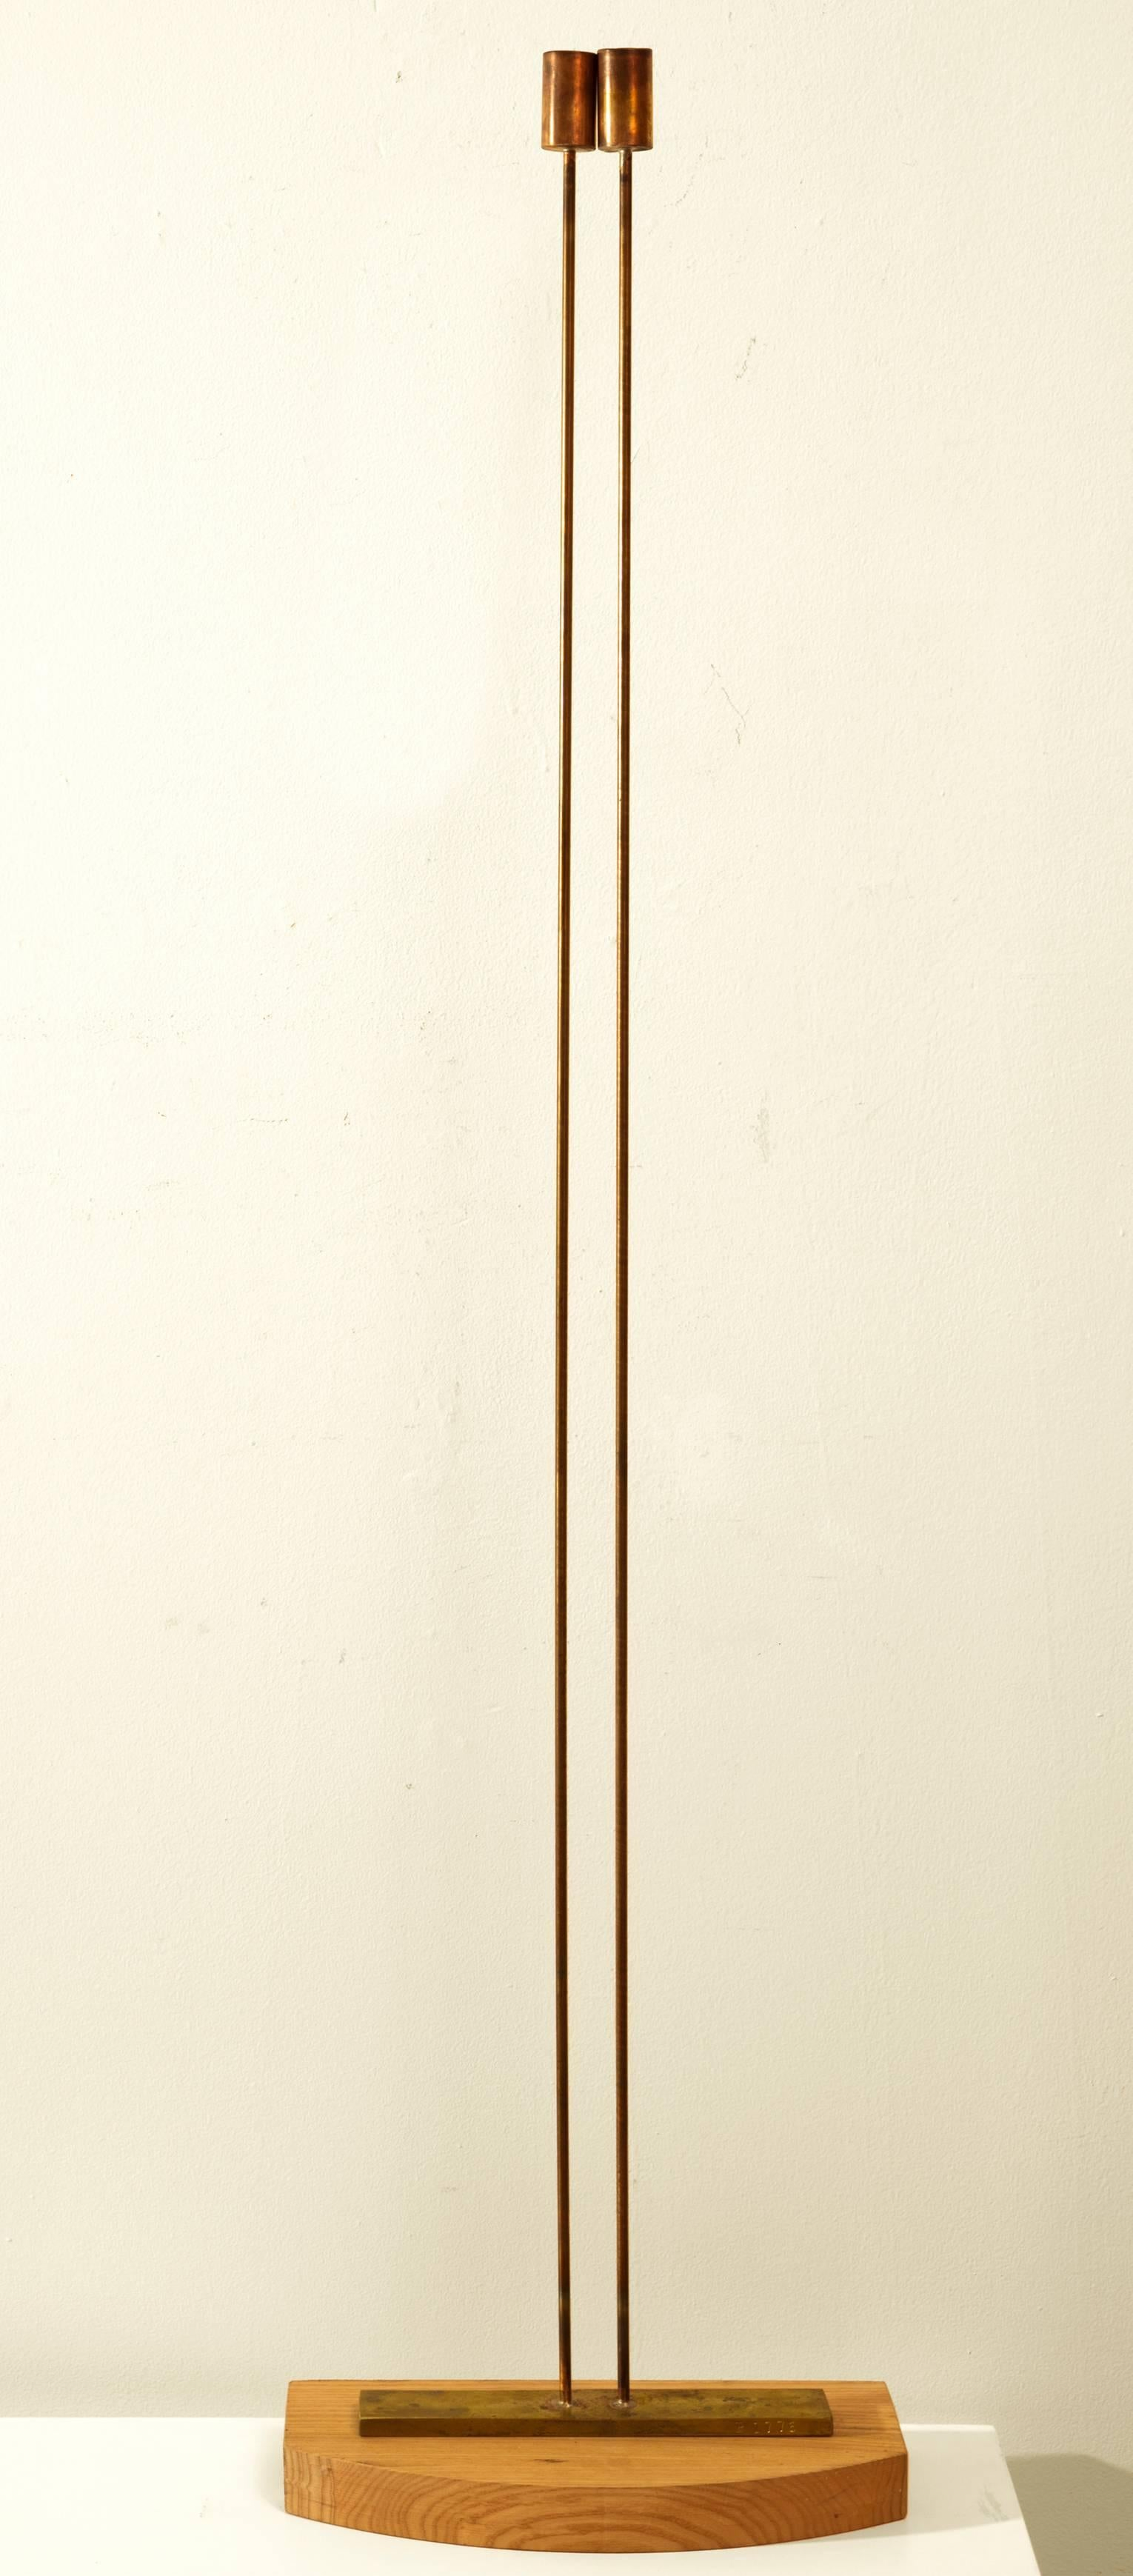 2 Rods on Wooden Base